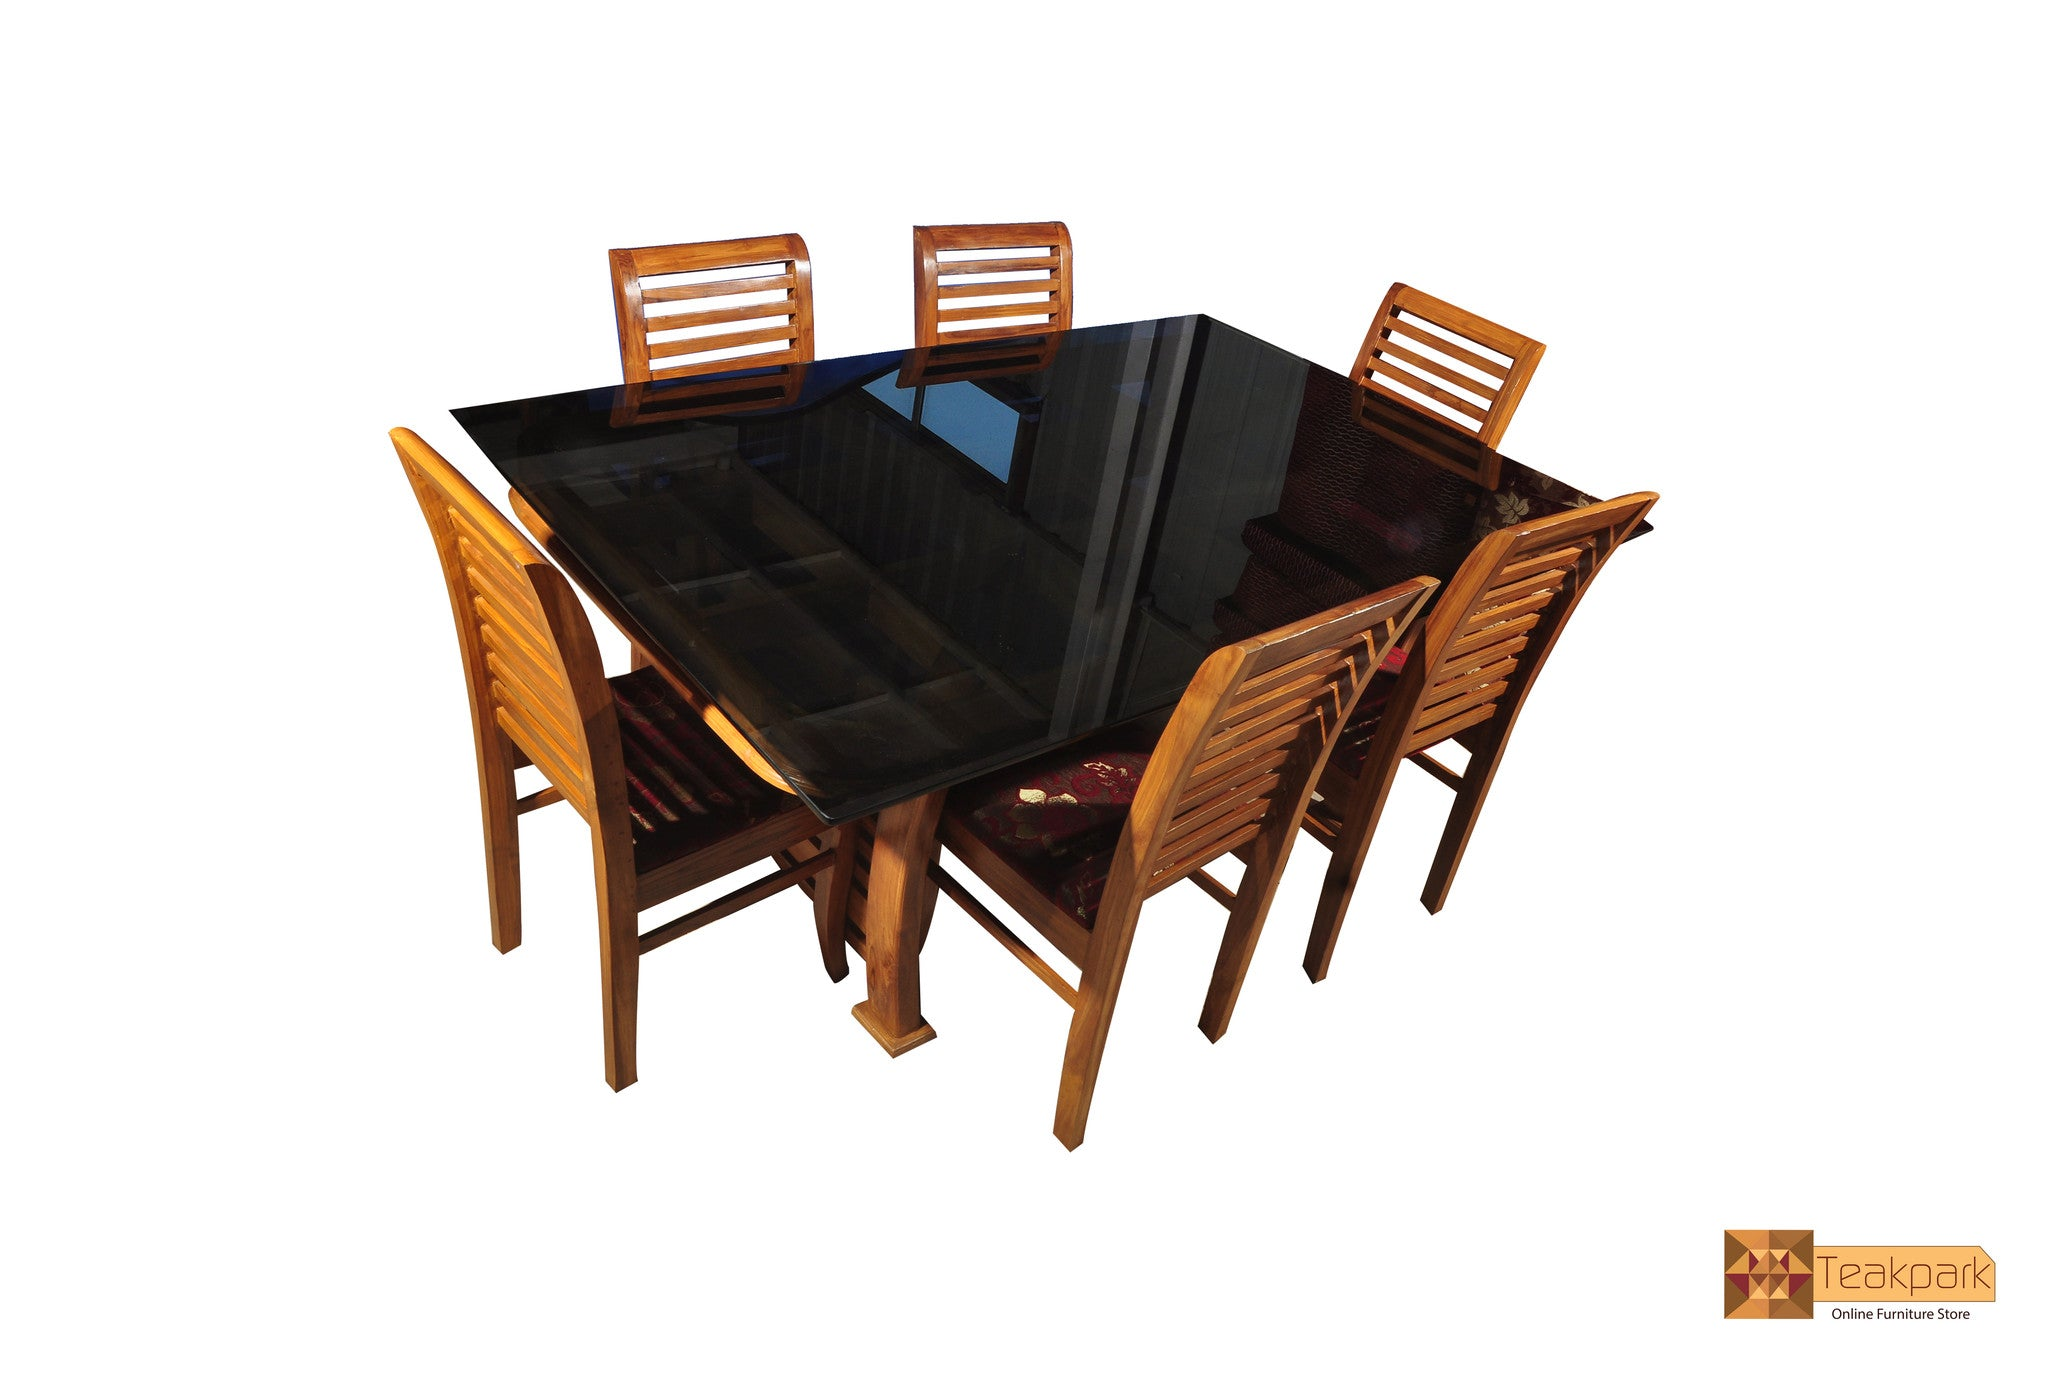 Colorado Solid Teak Wood Dining Set Glass Top Table With 6 Chairs Teakpark